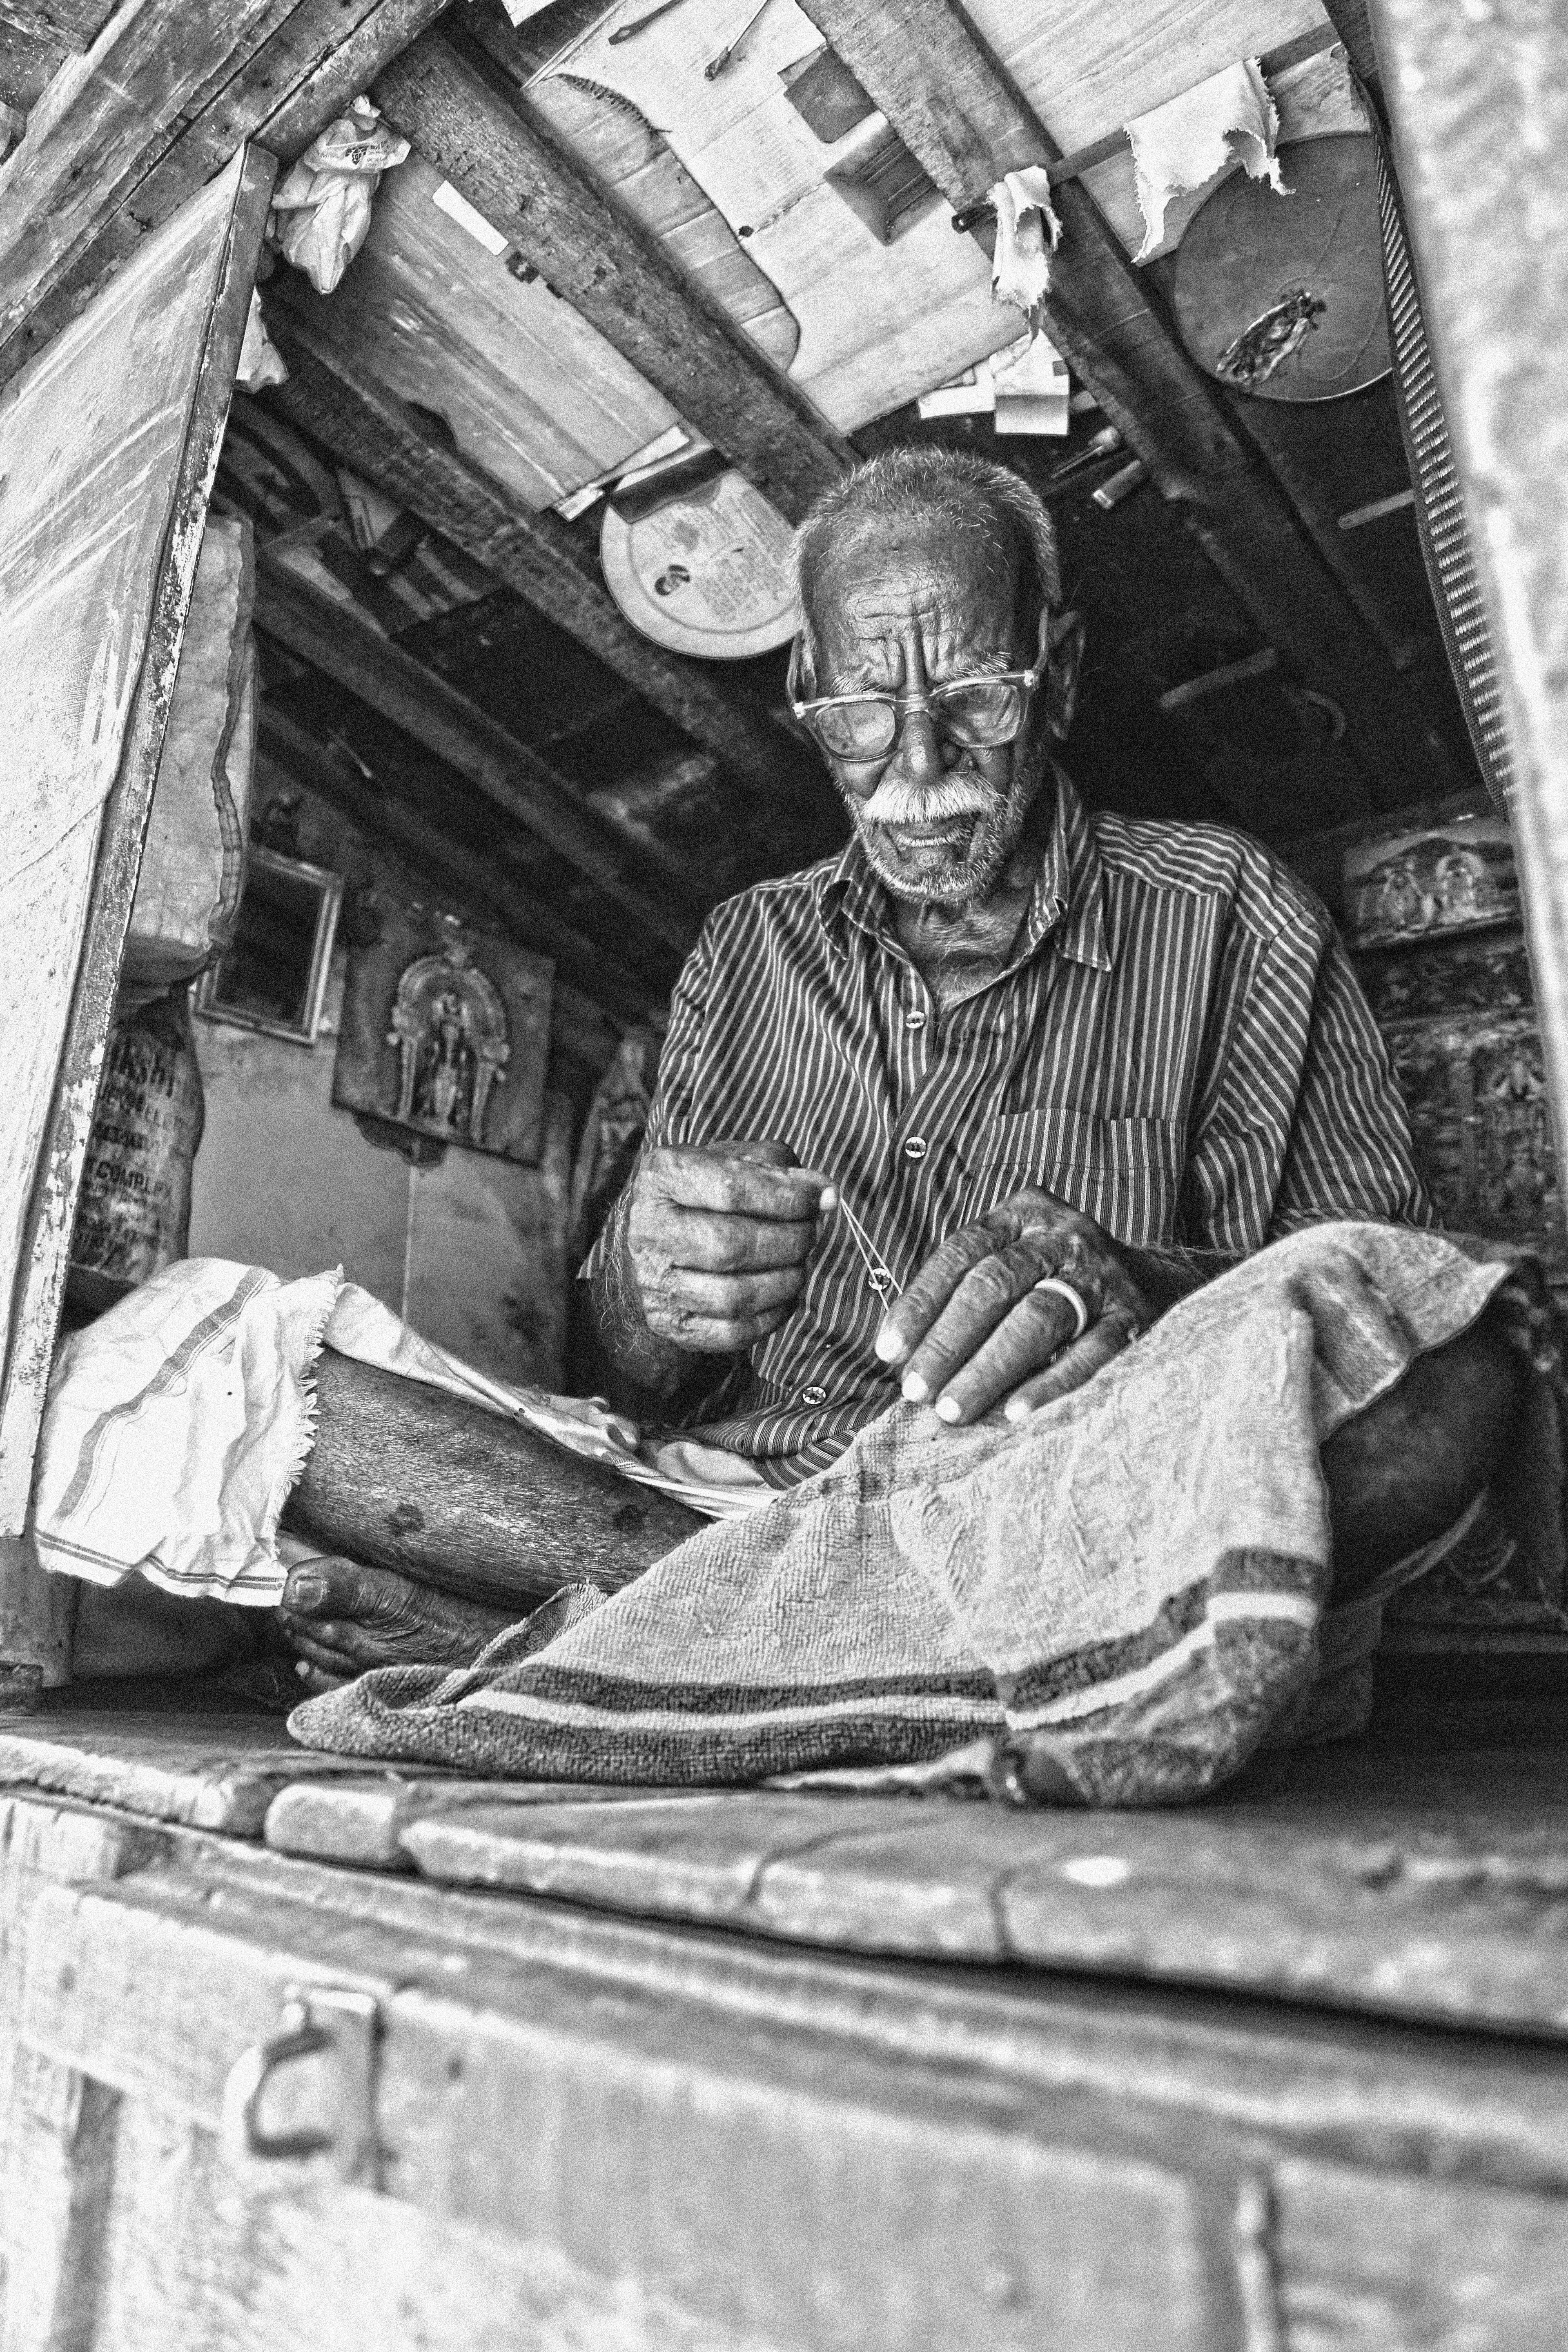 A man mends clothing in a shed in Coimbatore